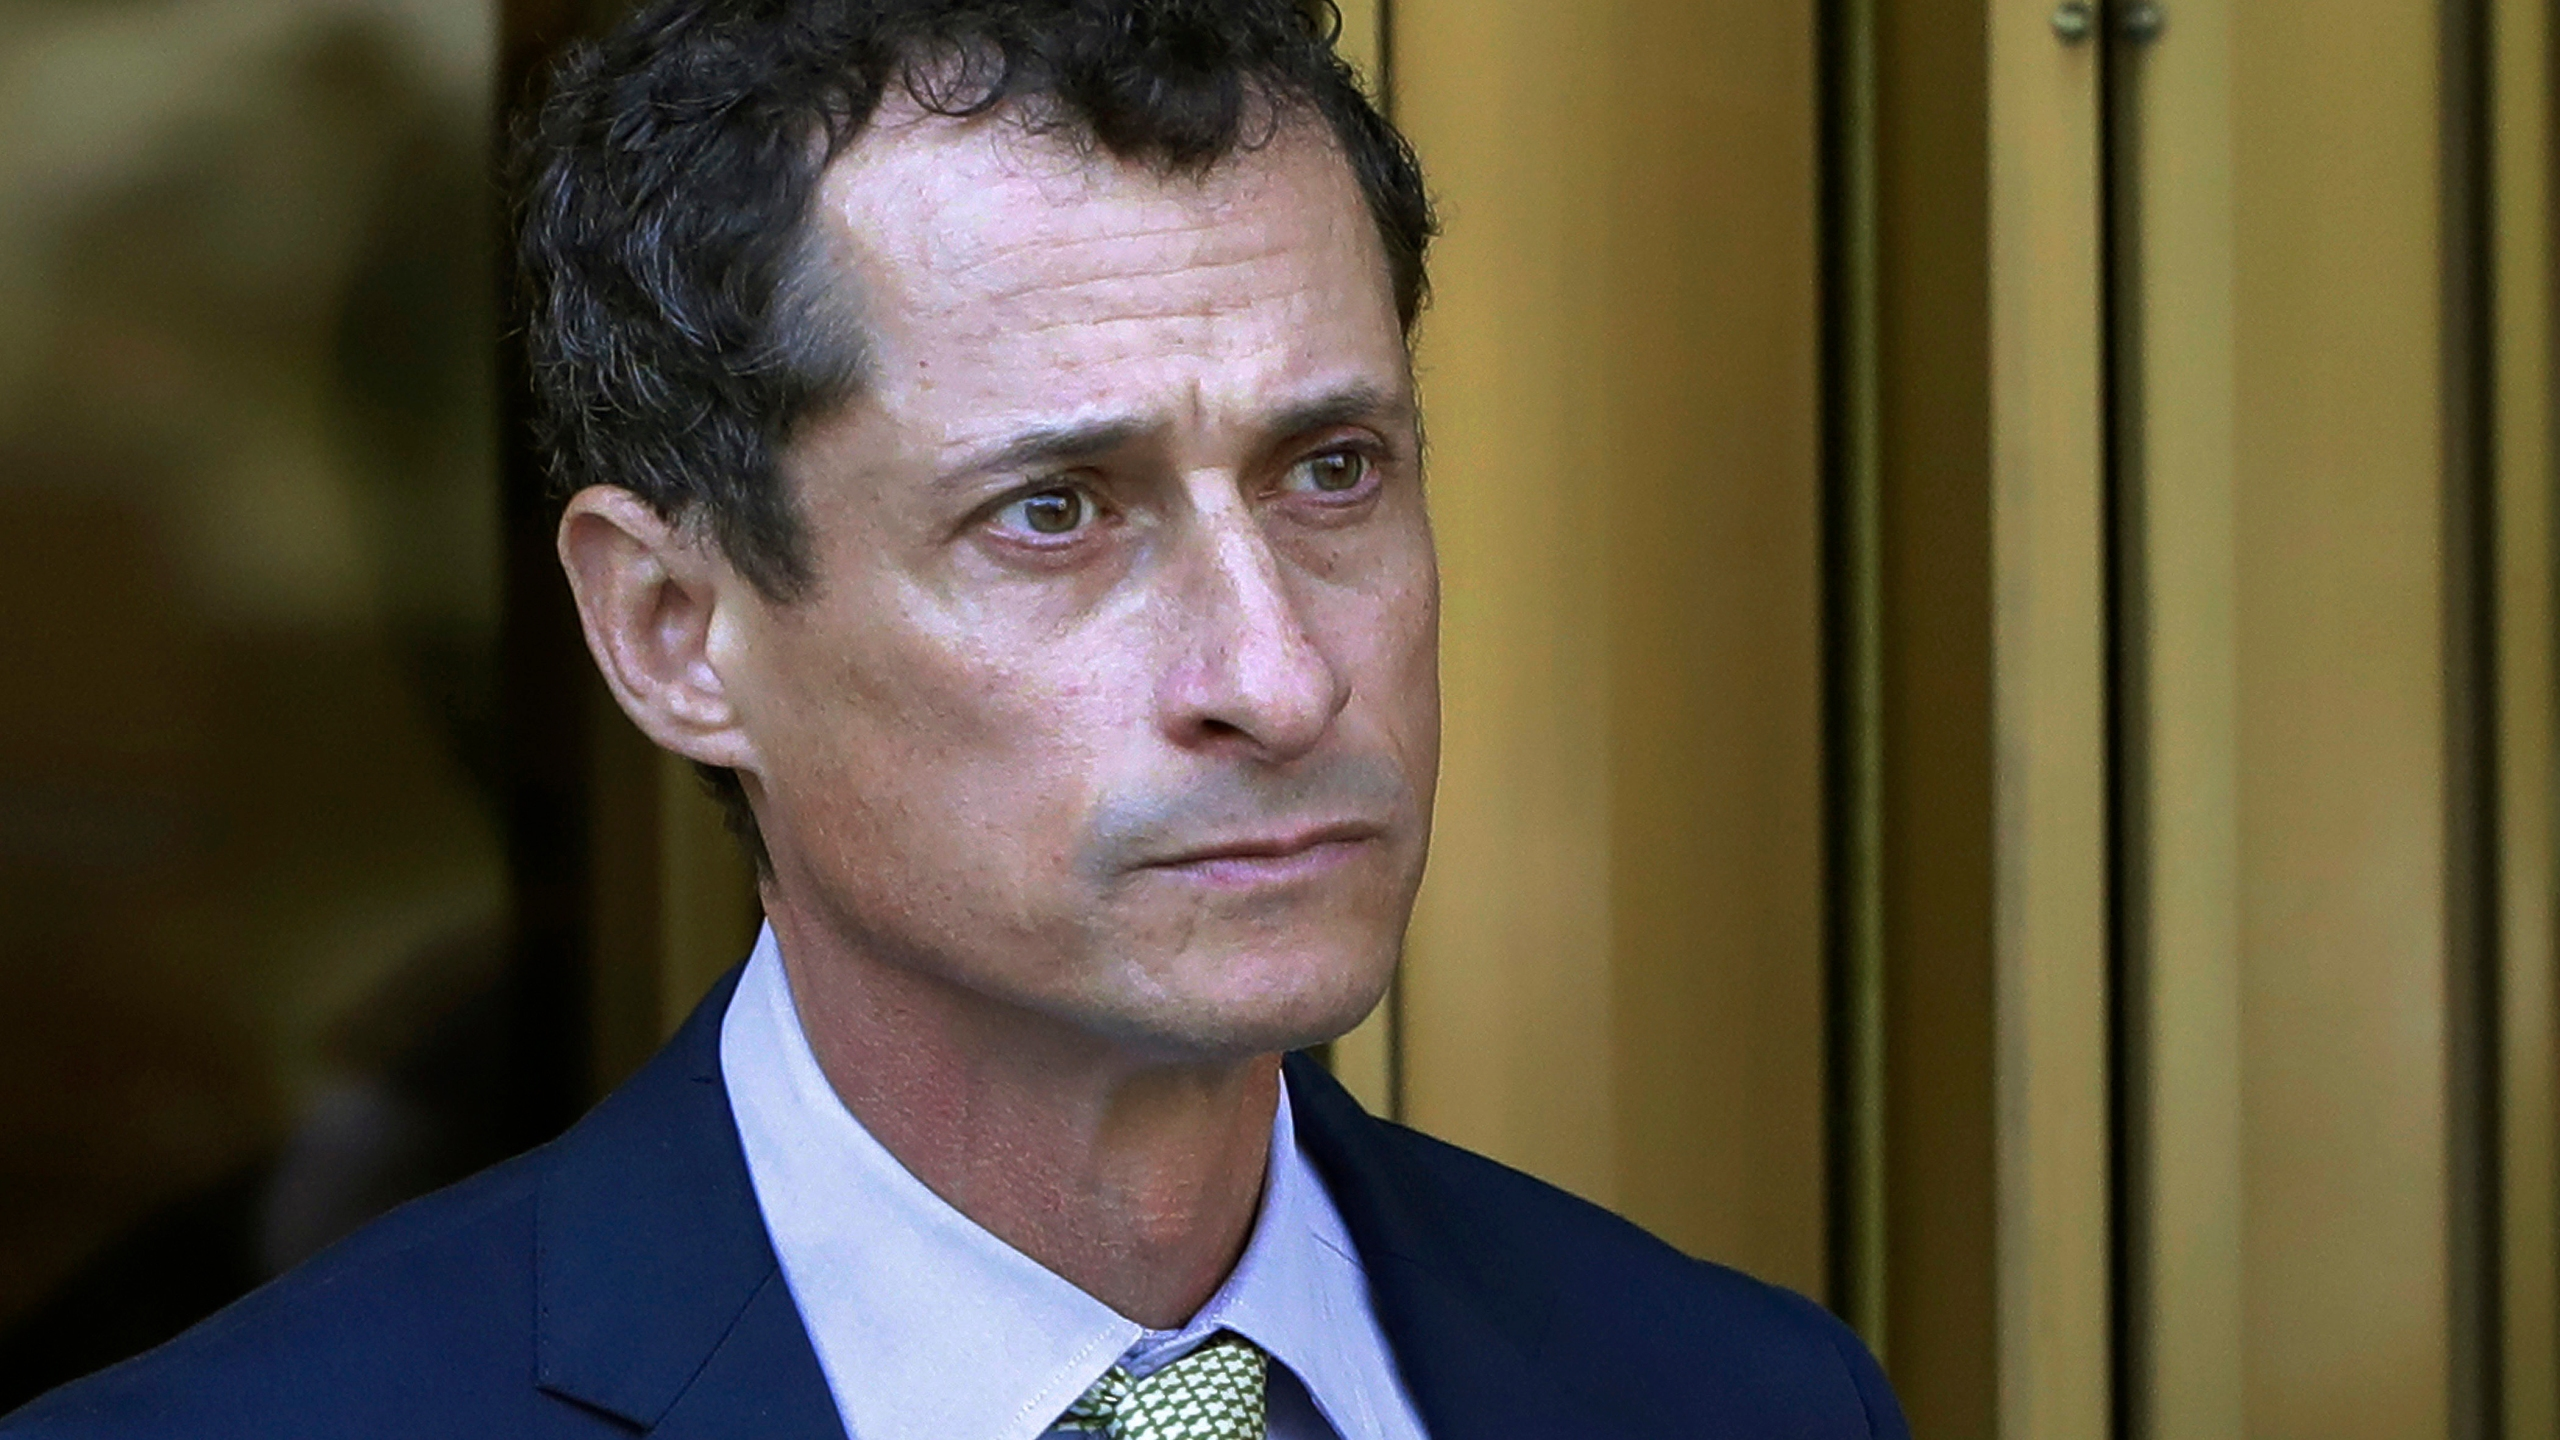 Anthony_Weiner_Released_63762-159532.jpg54062434